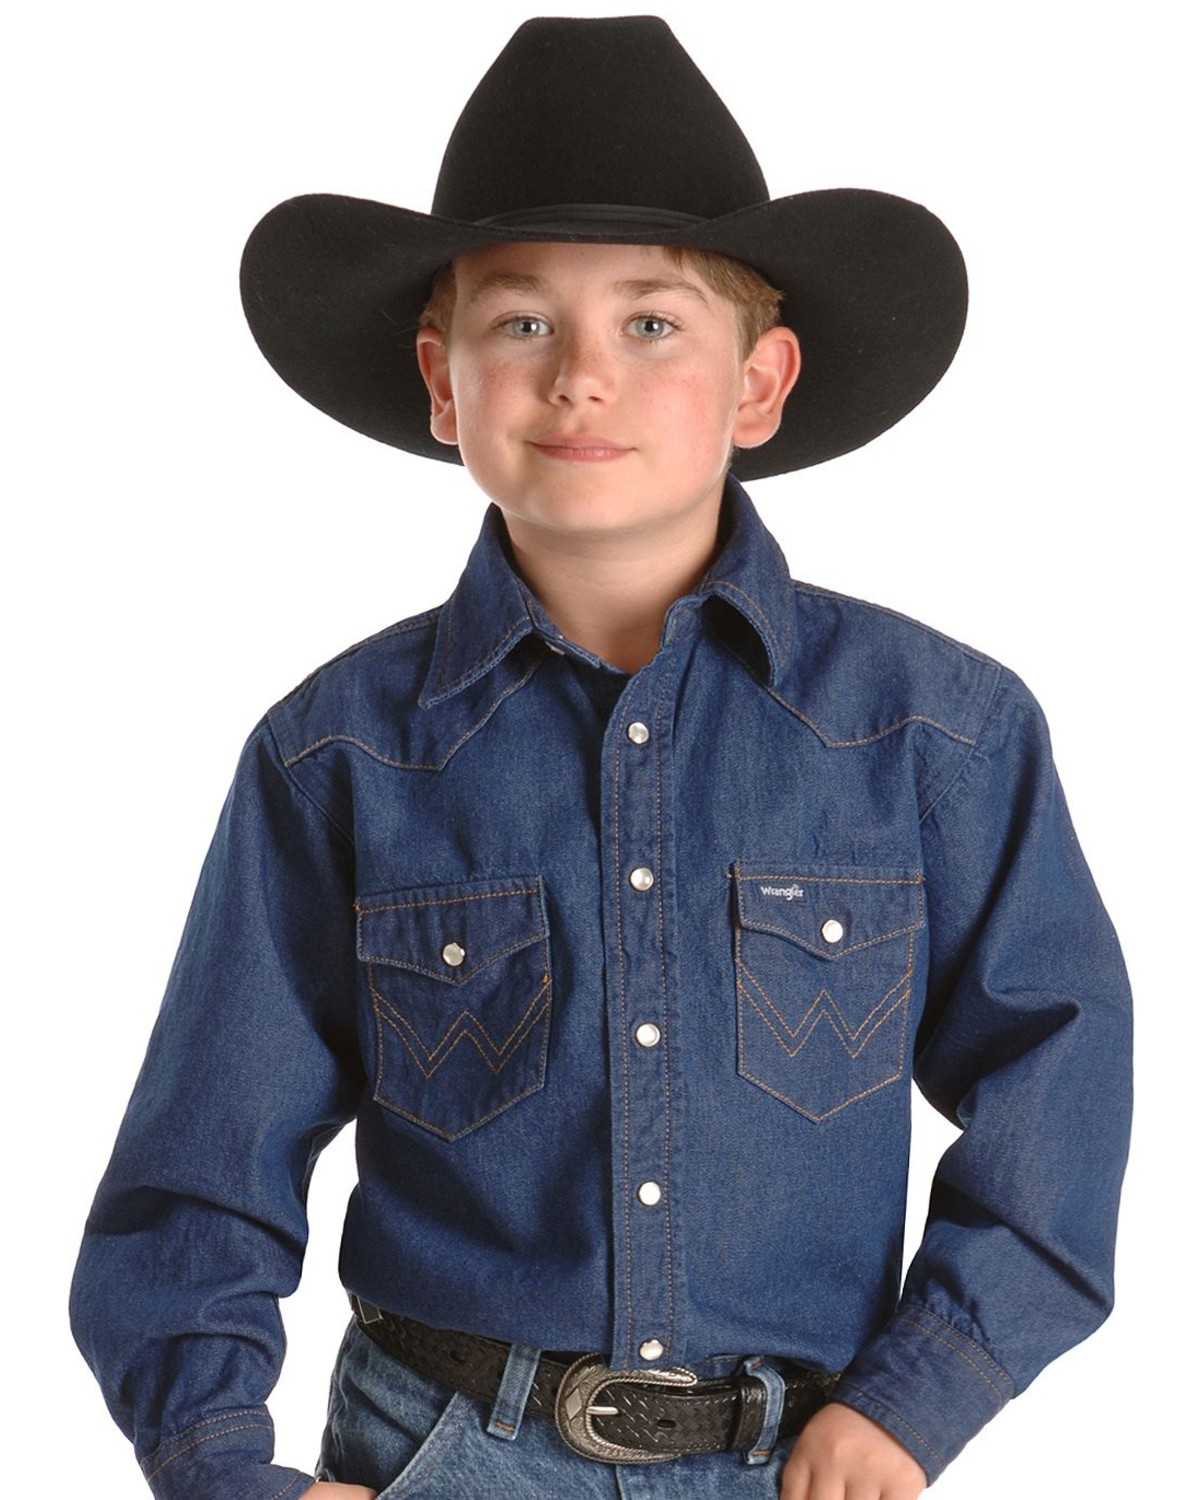 Boys' Western Shirts at whomeverf.cf: Boys Long Sleeve Shirts, Boys Short Sleeve Shirts, Boys Western Shirts, Boys Dress Shirts, Boys Snap Shirts and more – in stock and ready to ship.